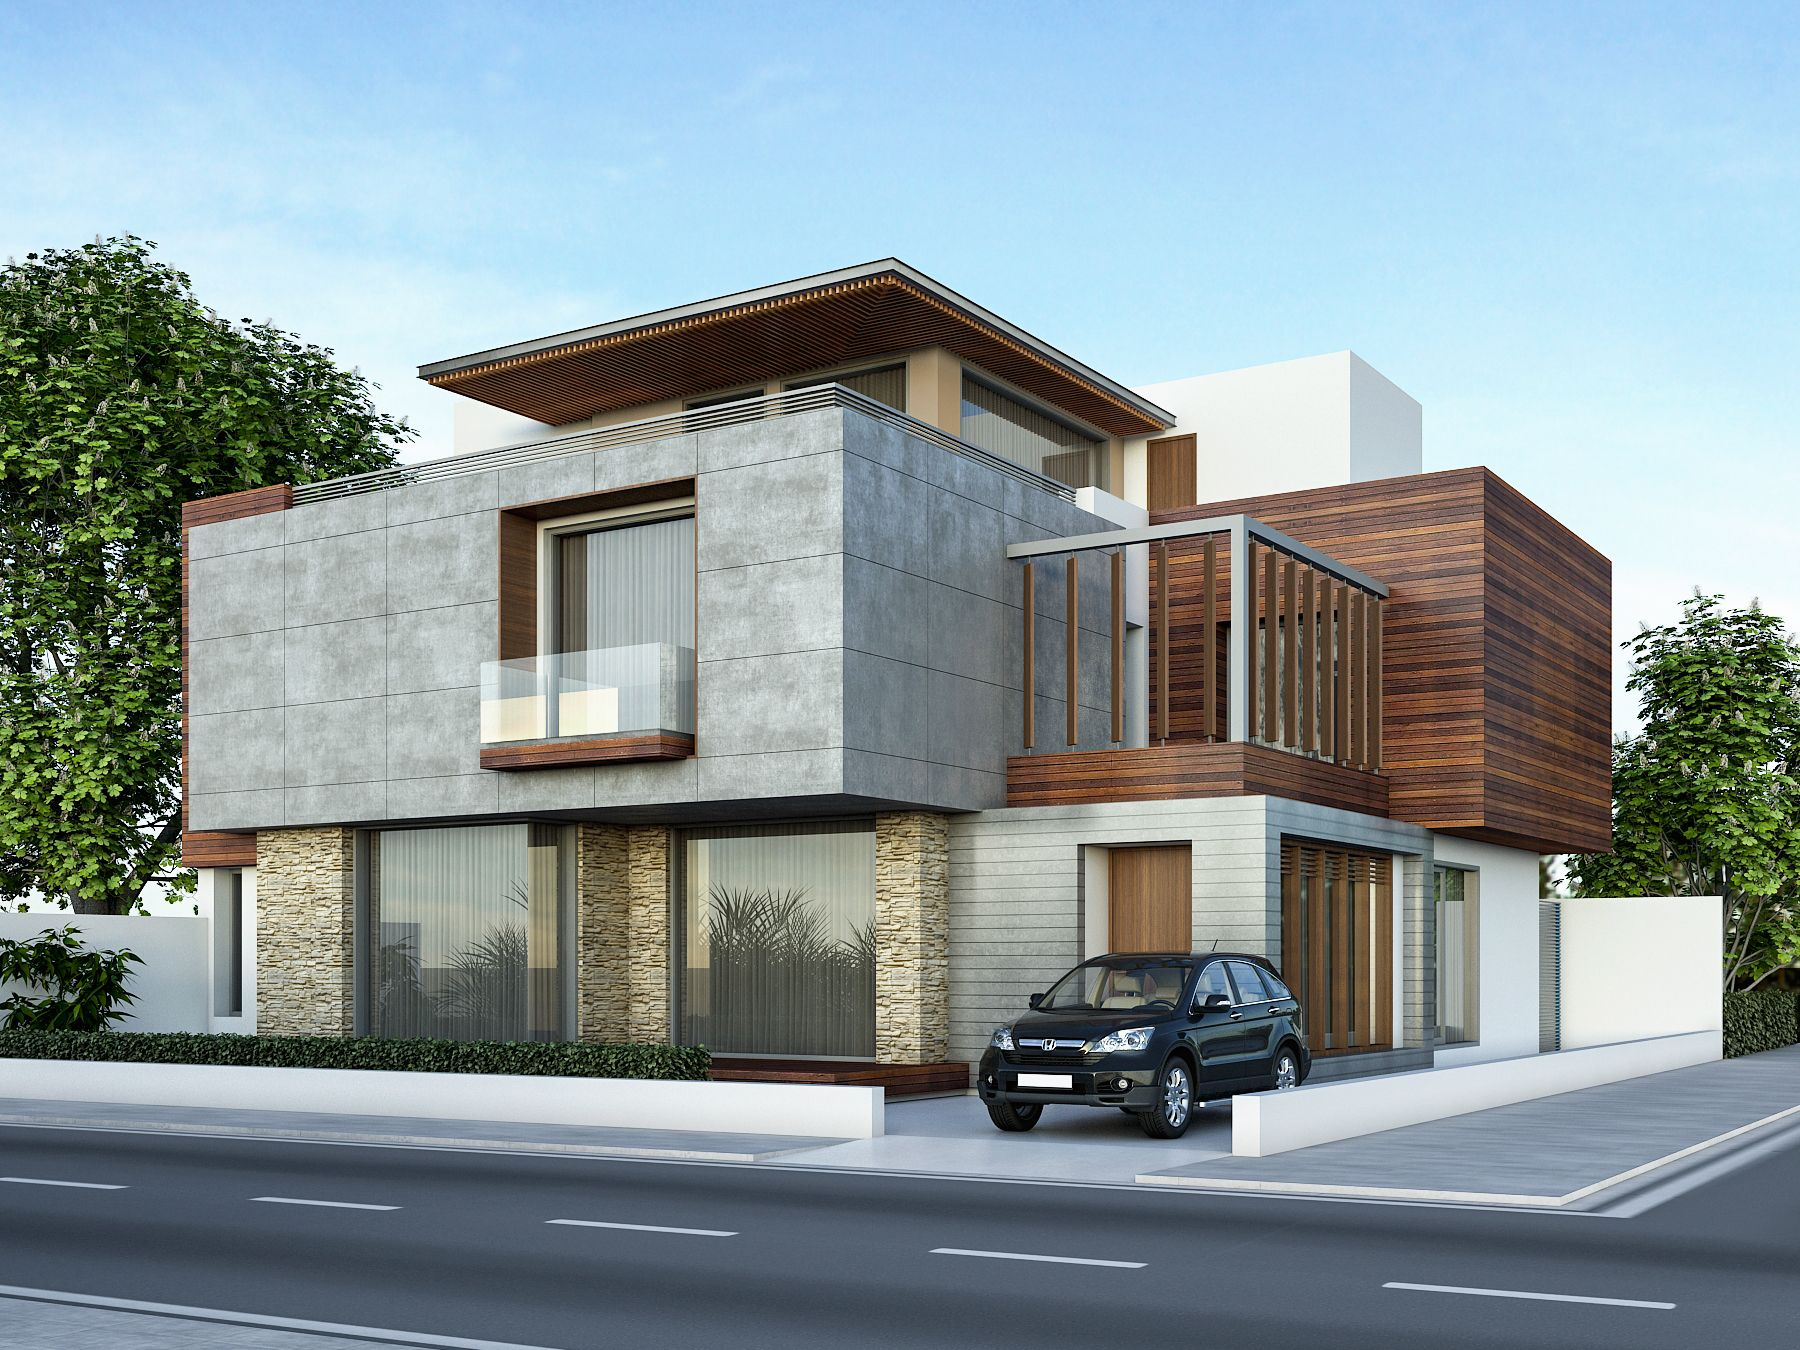 Hausfrontdesign in rajasthan architectural previsualization renders  bungalow designs exterior